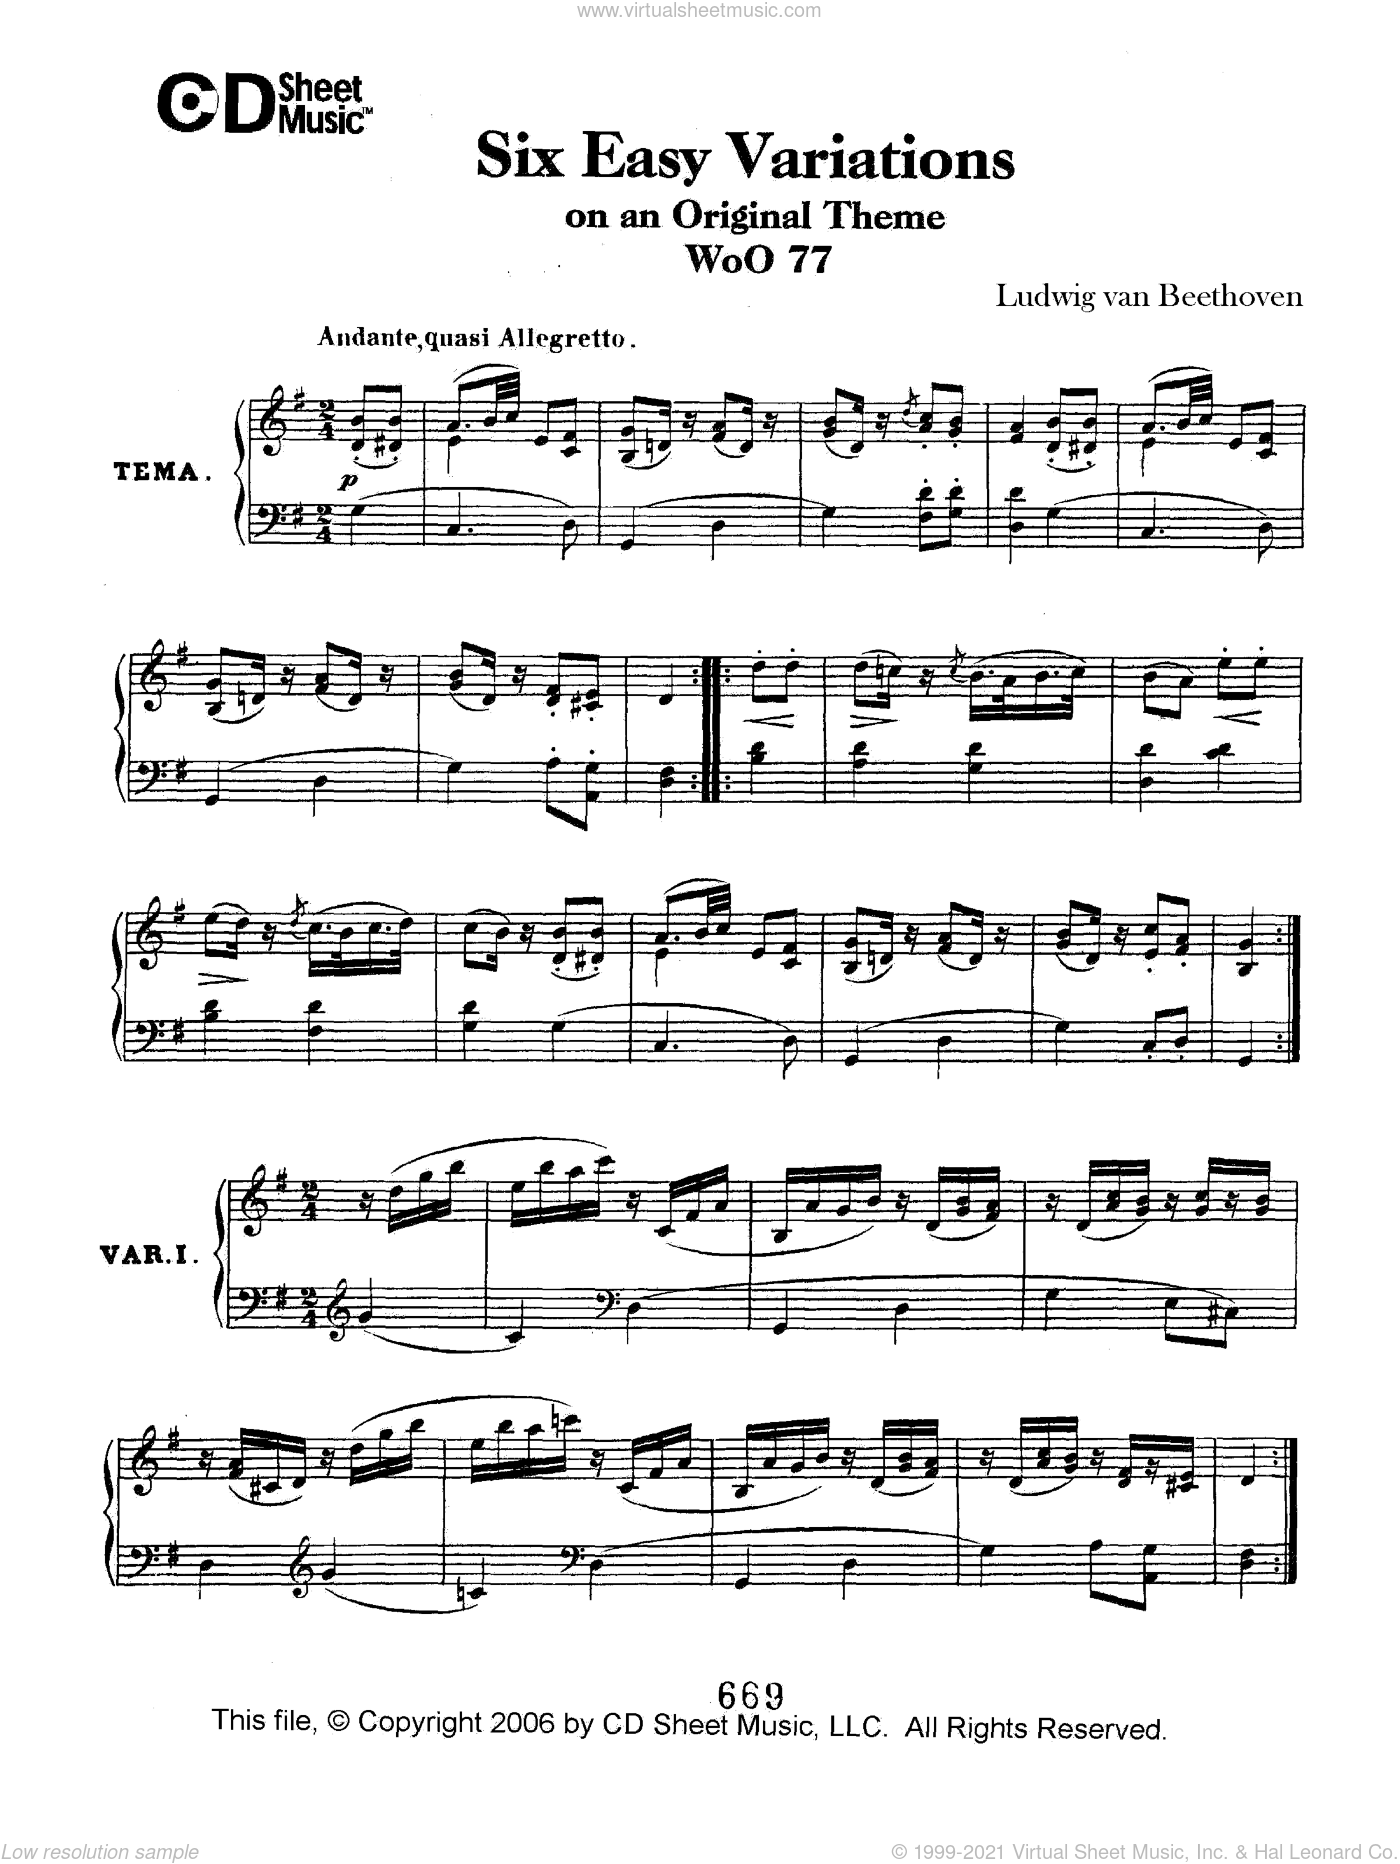 Easy (6) Variations On An Original Theme, Woo 77 sheet music for piano solo by Ludwig van Beethoven